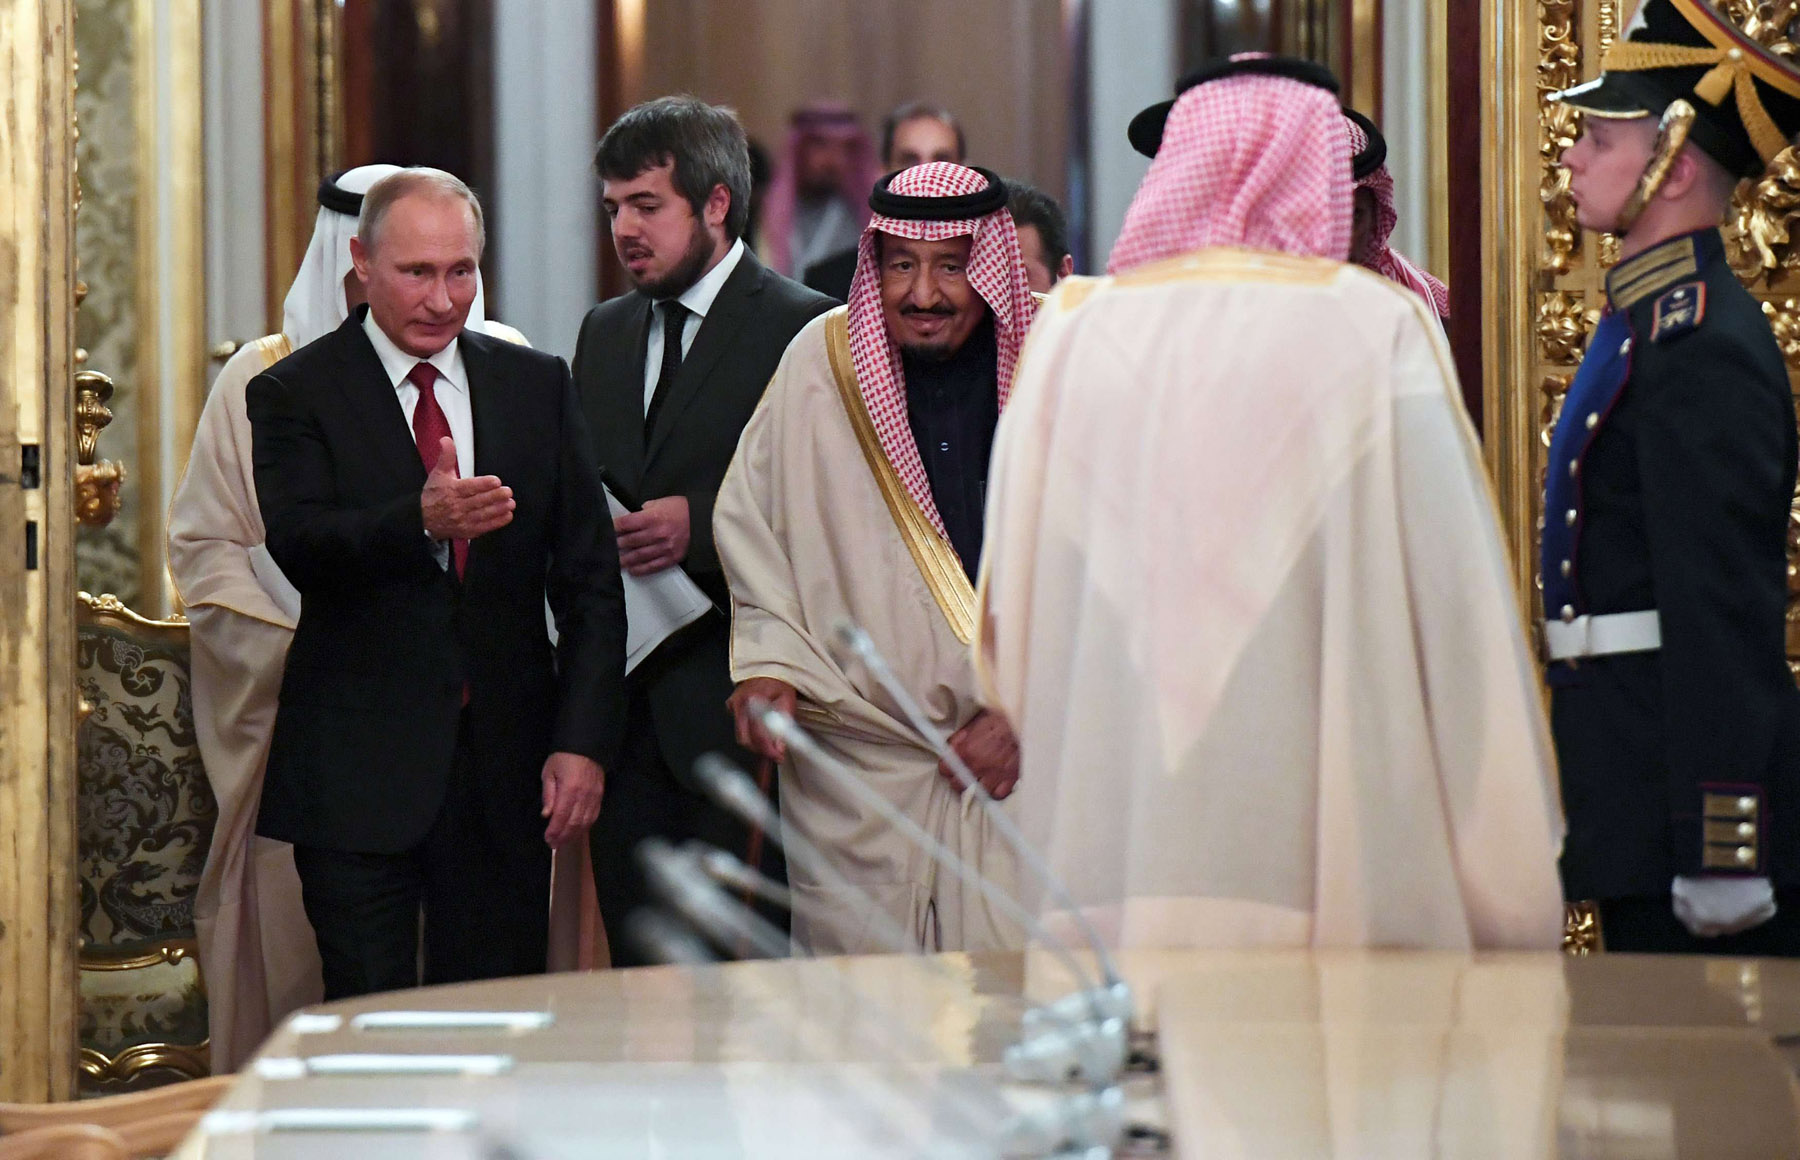 Key alliances. Russian President Vladimir Putin (L) shows the way to Saudi King Salman bin Abdulaziz Al Saud during a meeting at the Kremlin in Moscow, last October. (Reuters)